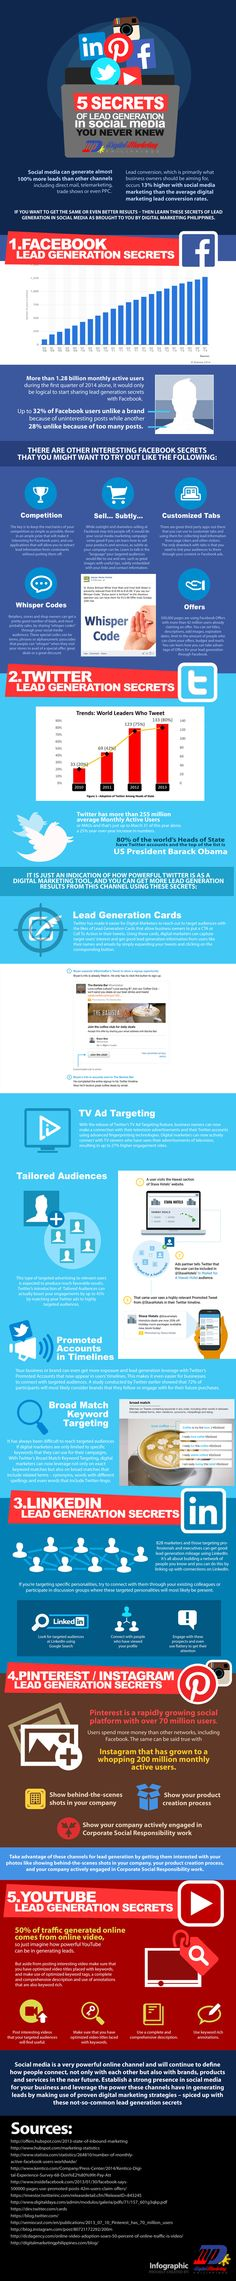 Infographic: The 5 secrets to generating leads through social media - The Hub